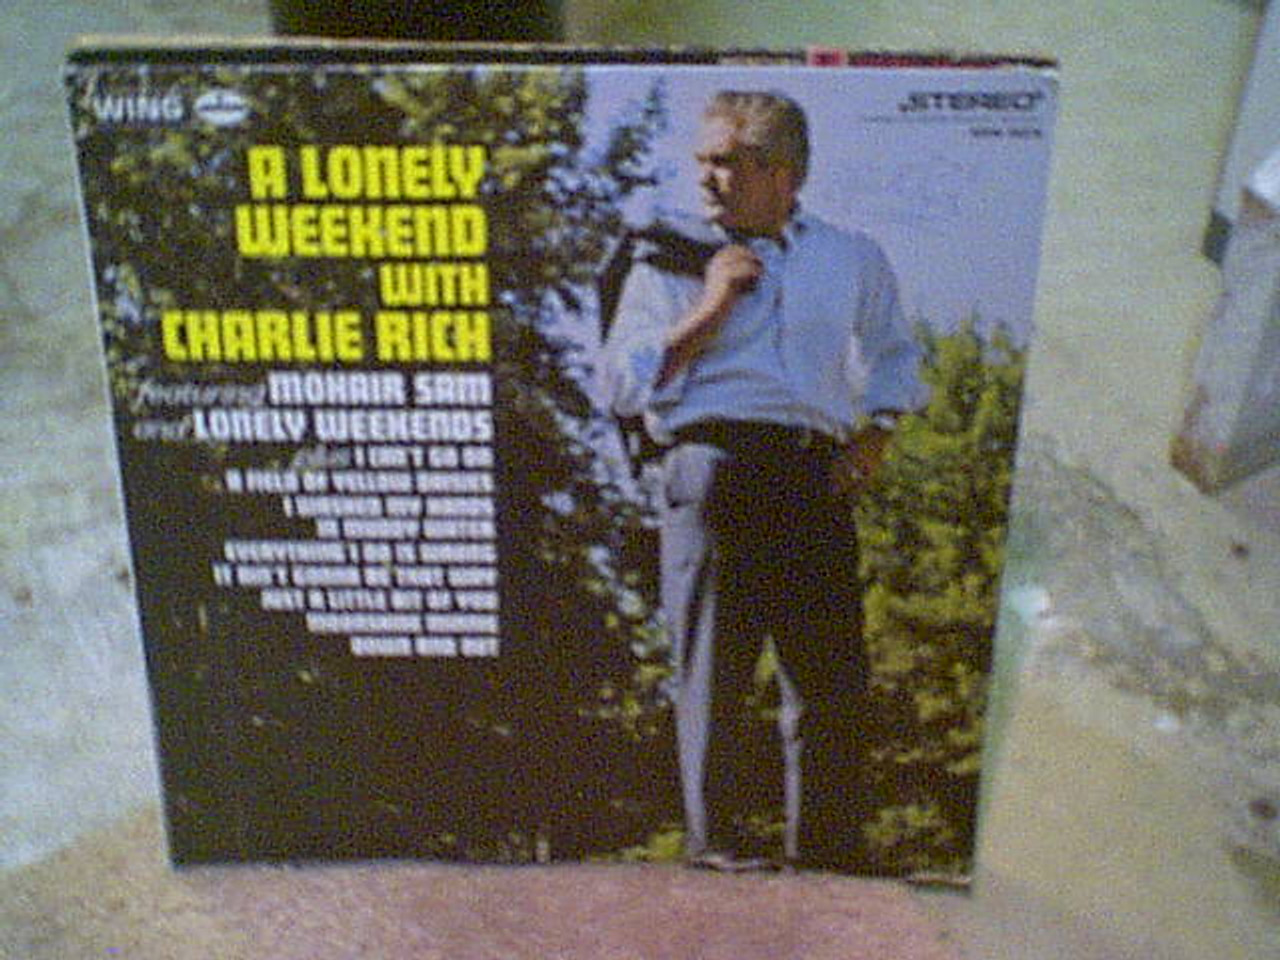 """Rich, Charlie """"A Lonely Weekend With"""" 1969 LP Signed Autograph """"Mohair Sam"""""""